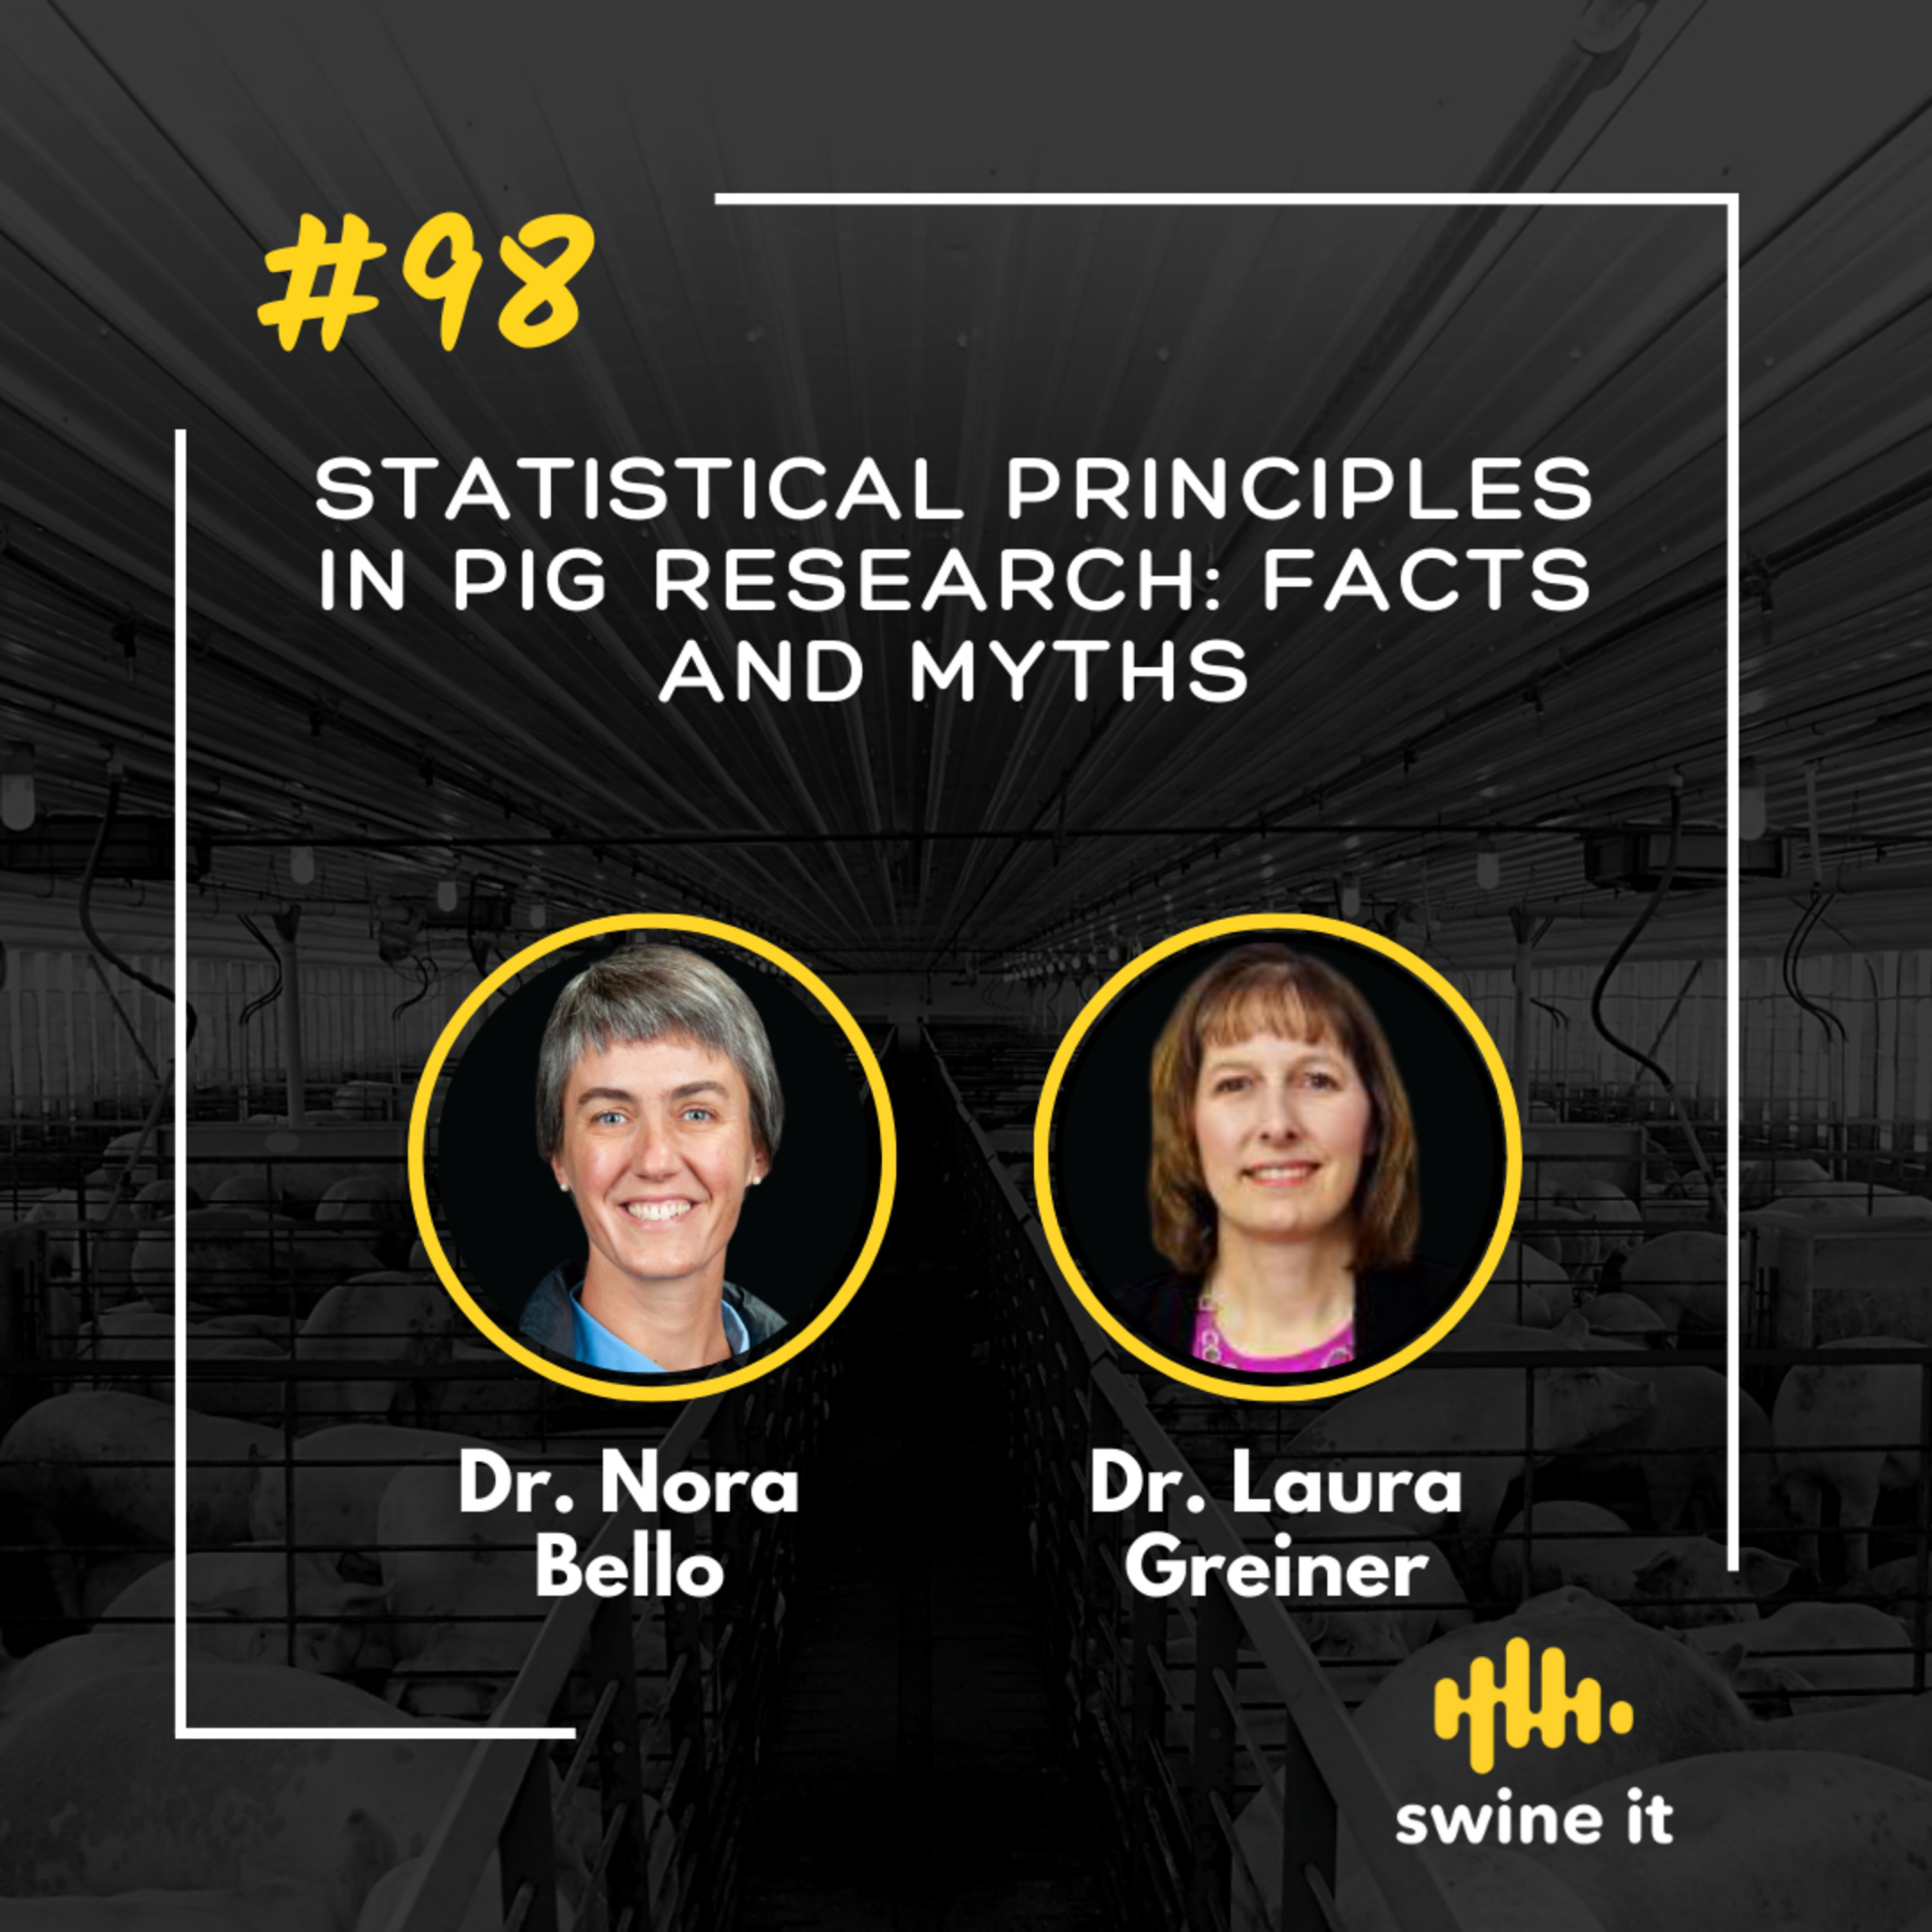 Statistical principles in pig research: facts and myths - Dr. Nora Bello